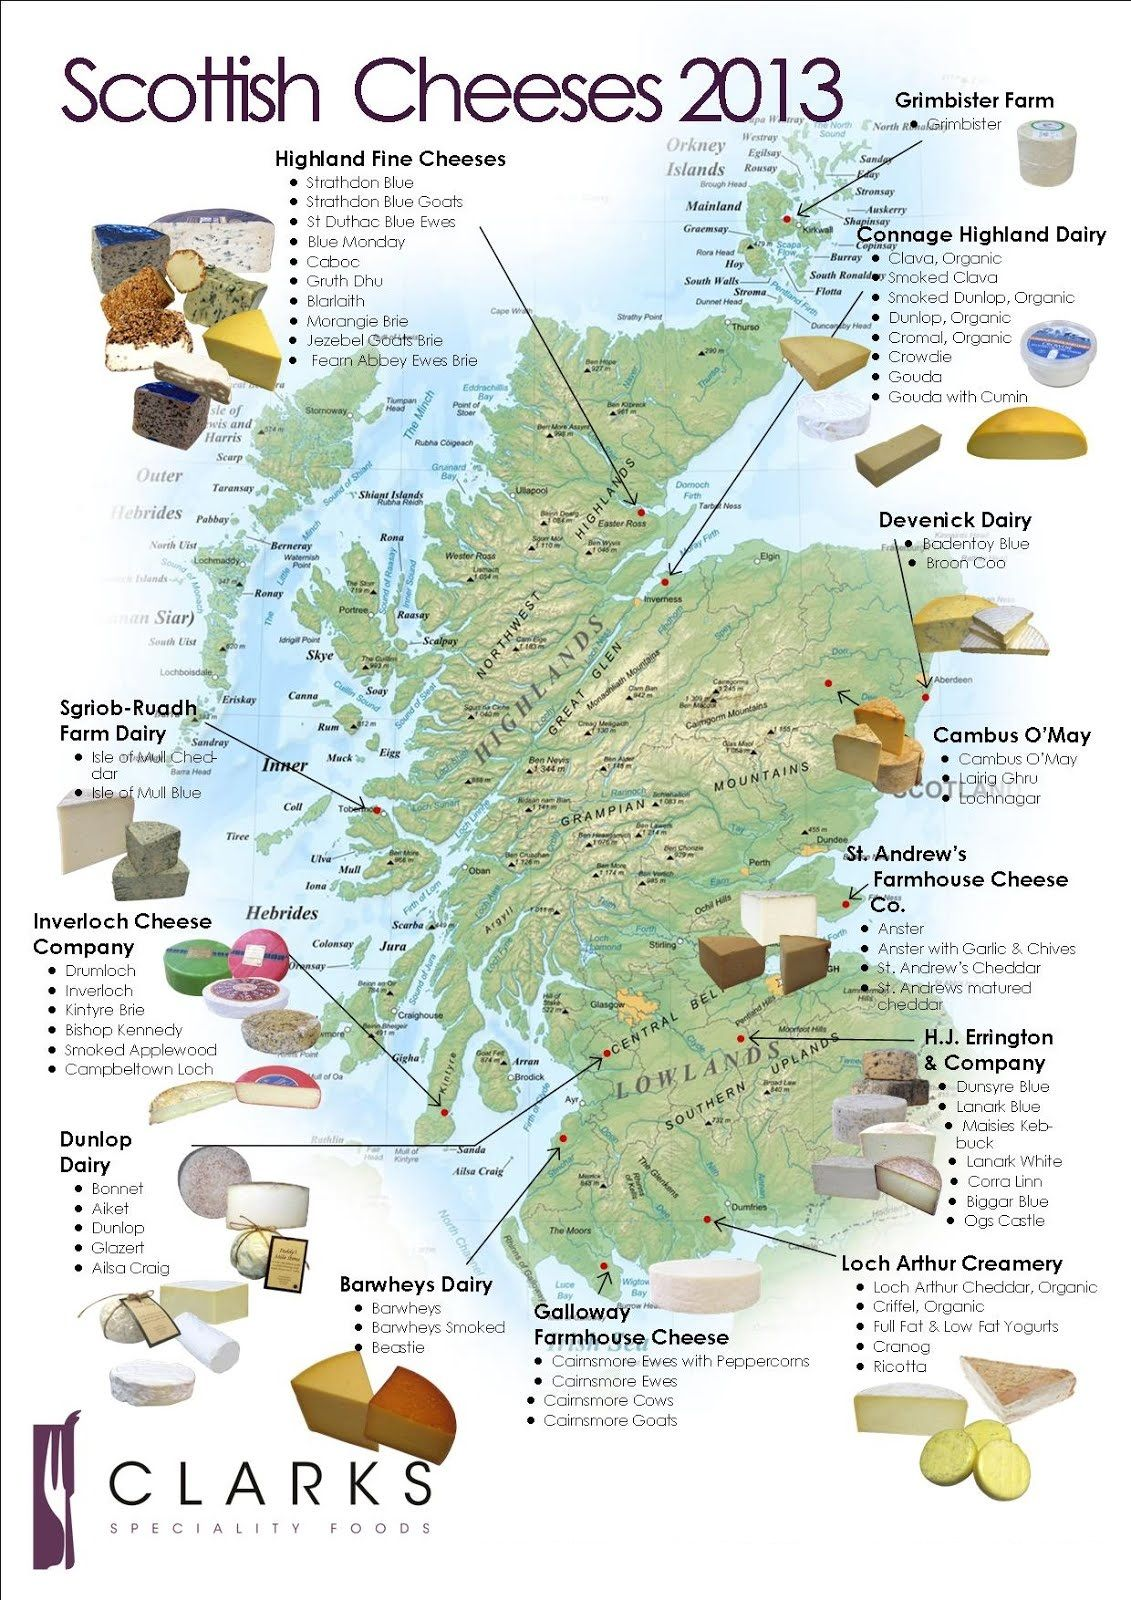 Scotland Cheeses Map Image By Clarksfoods.co.uk 1131